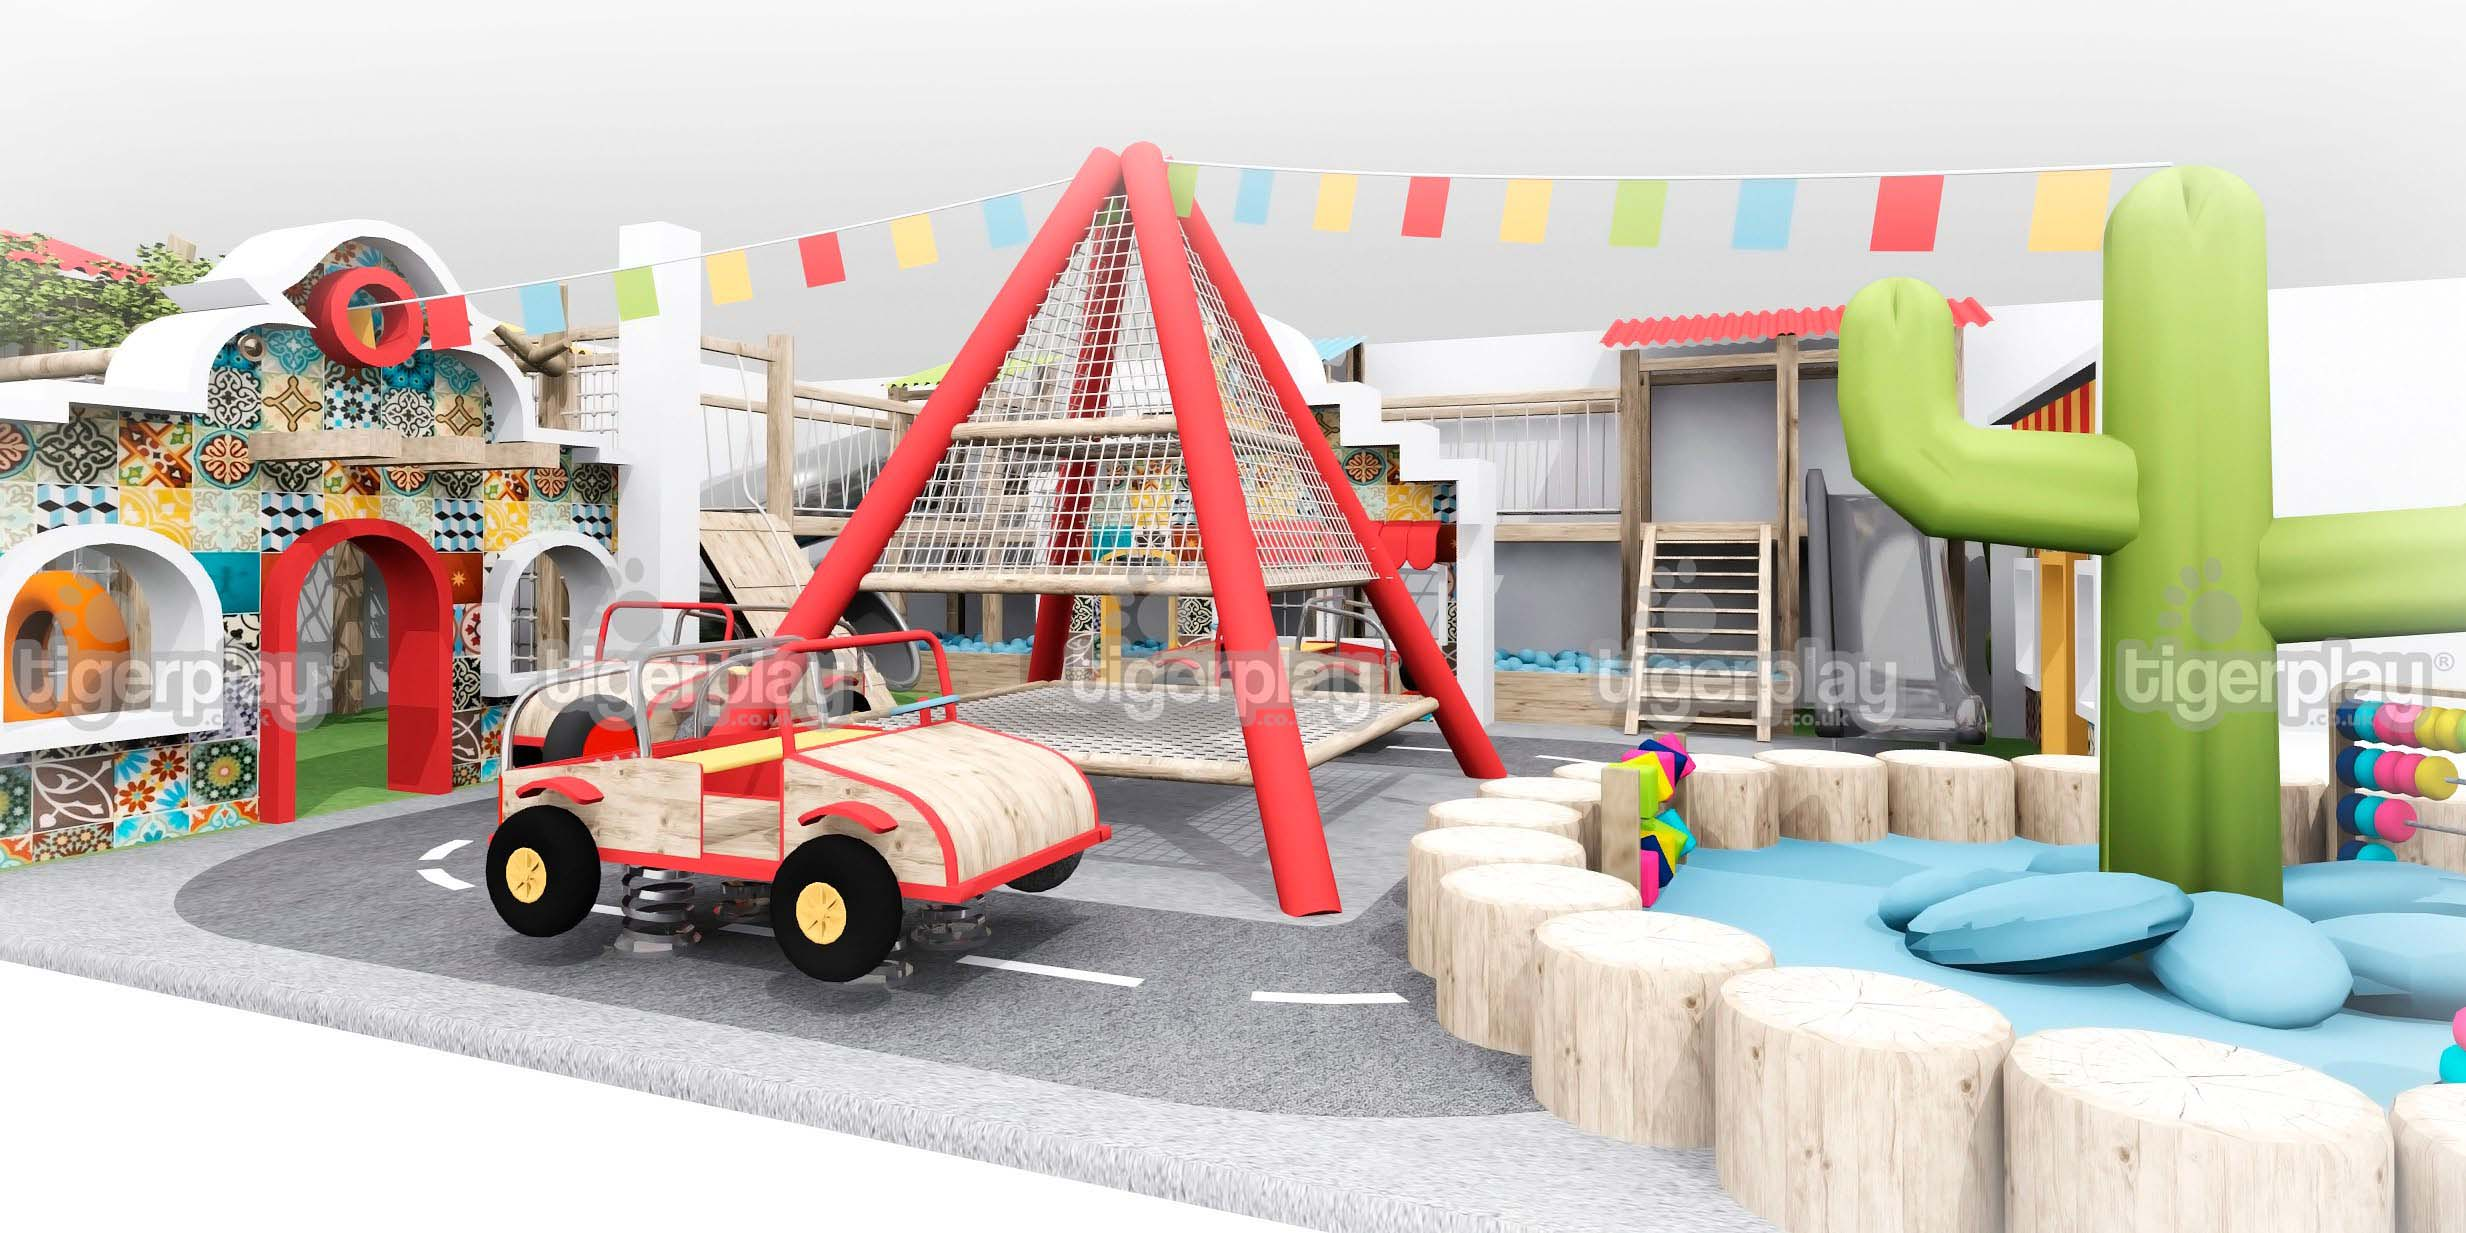 Tigerplay_Angel Court -  Play Area_V1-5.jpg